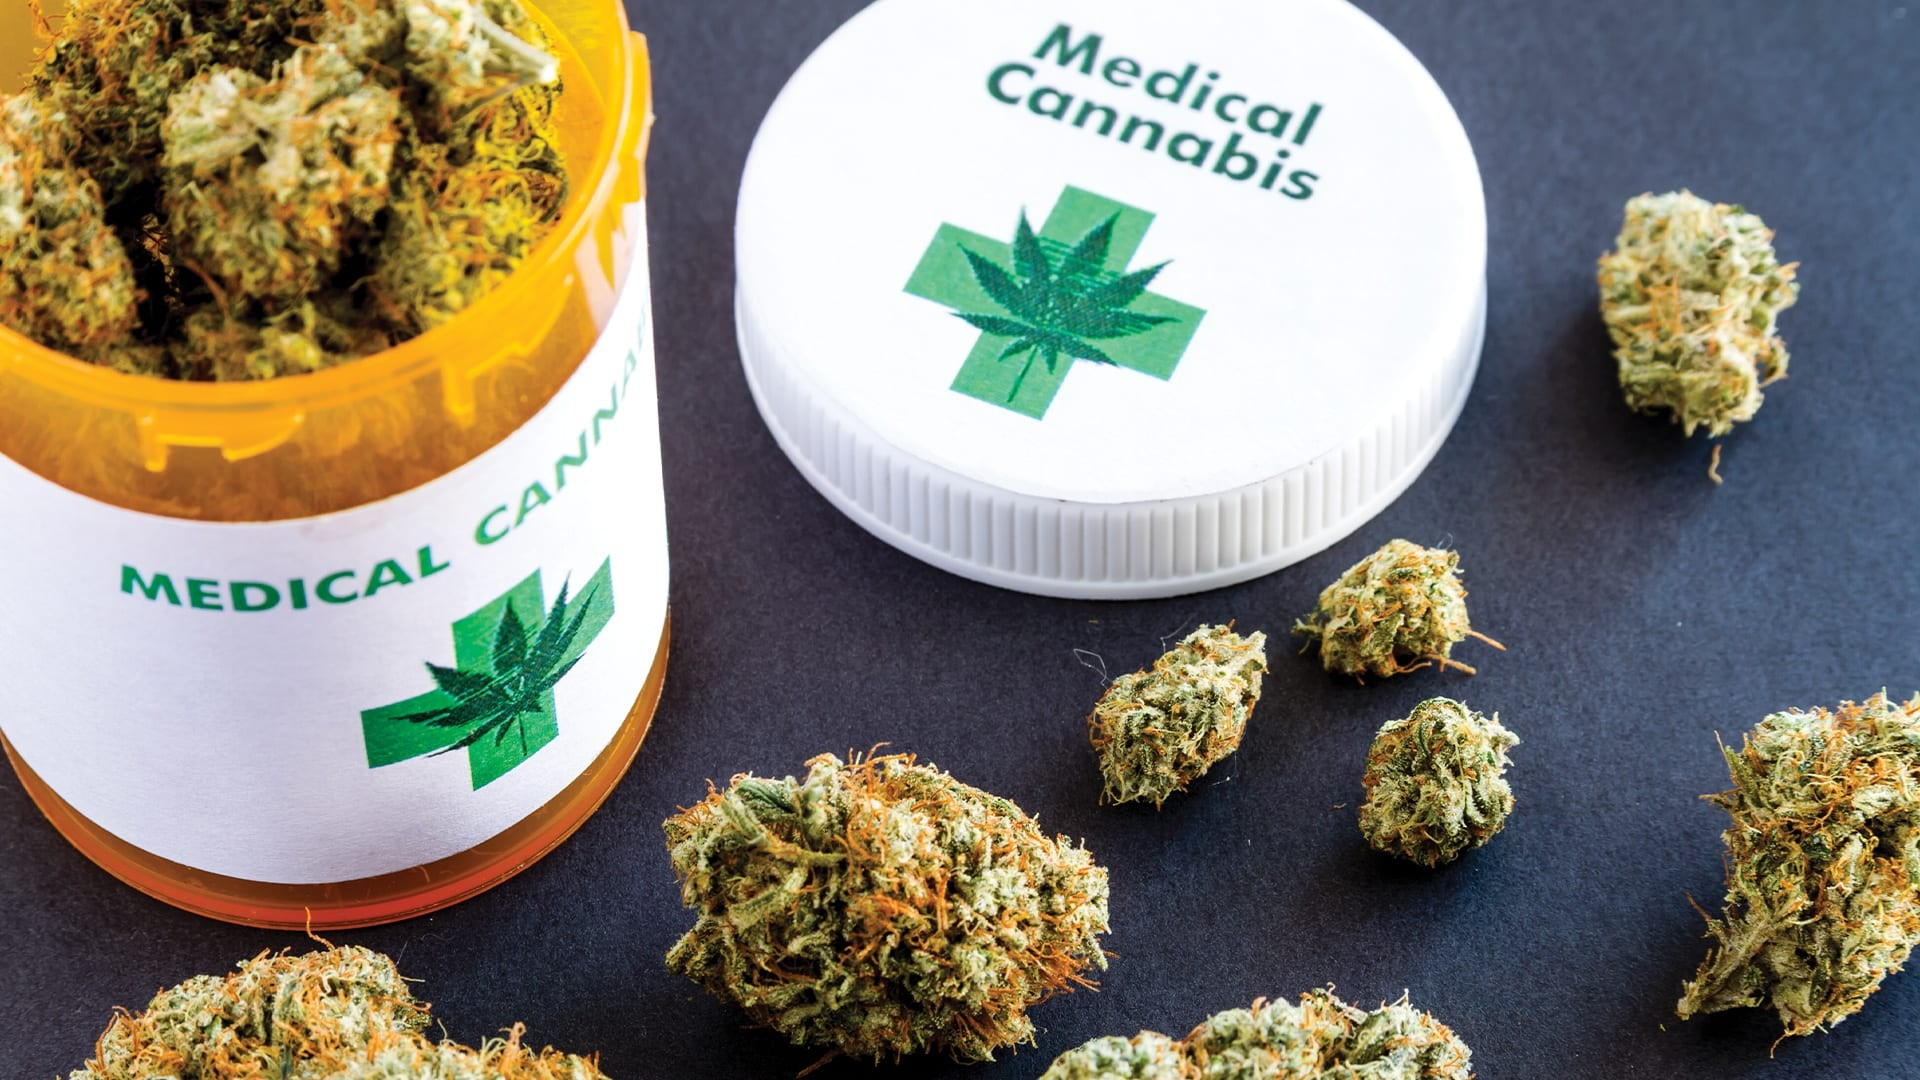 Medical Cannabis Project